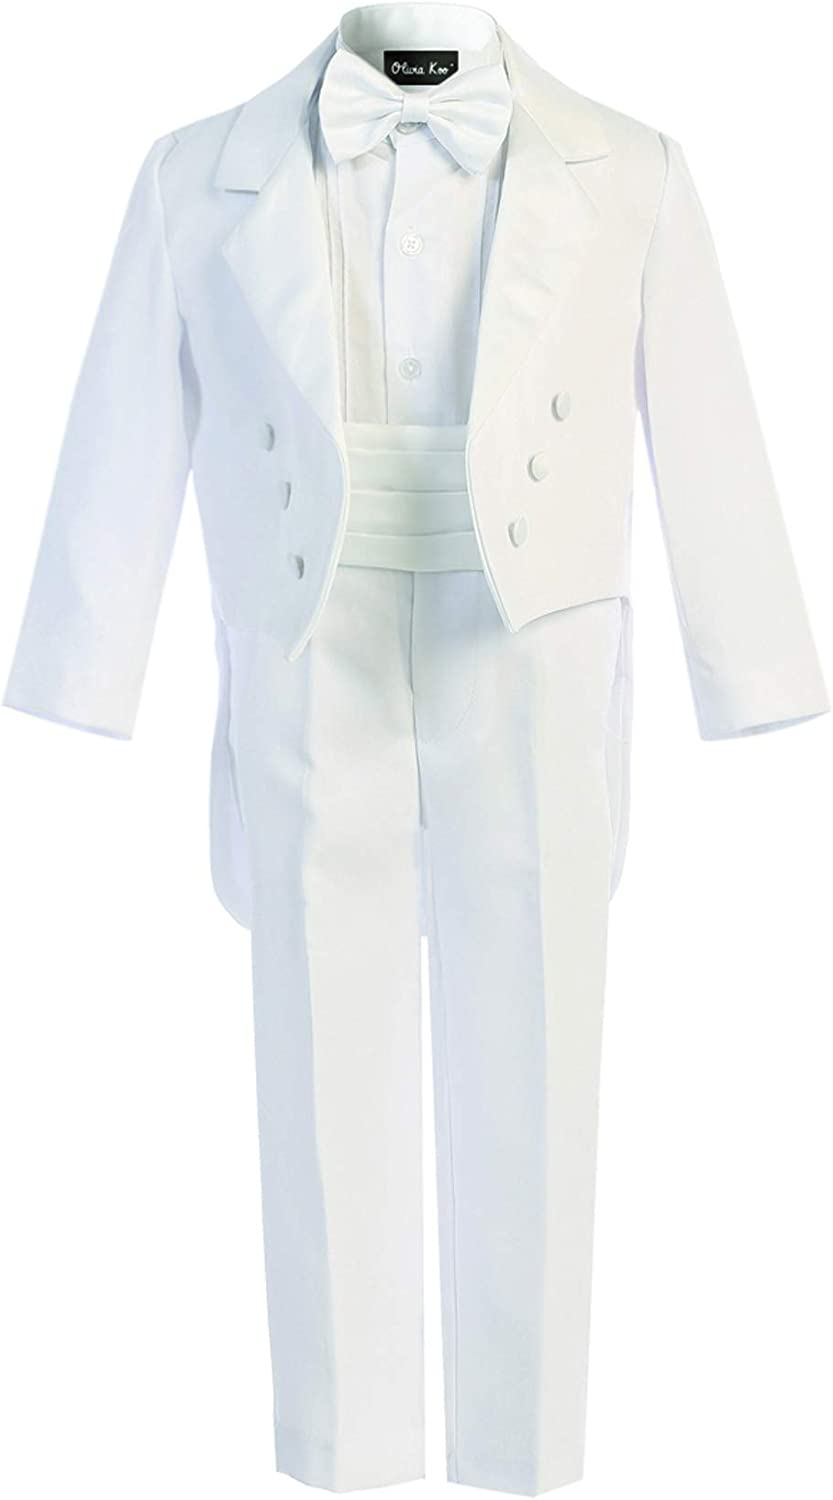 OLIVIA KOO Boy's Classic Ring Max 74% Sale special price OFF Boy Set Signature Tail Tuxedo with